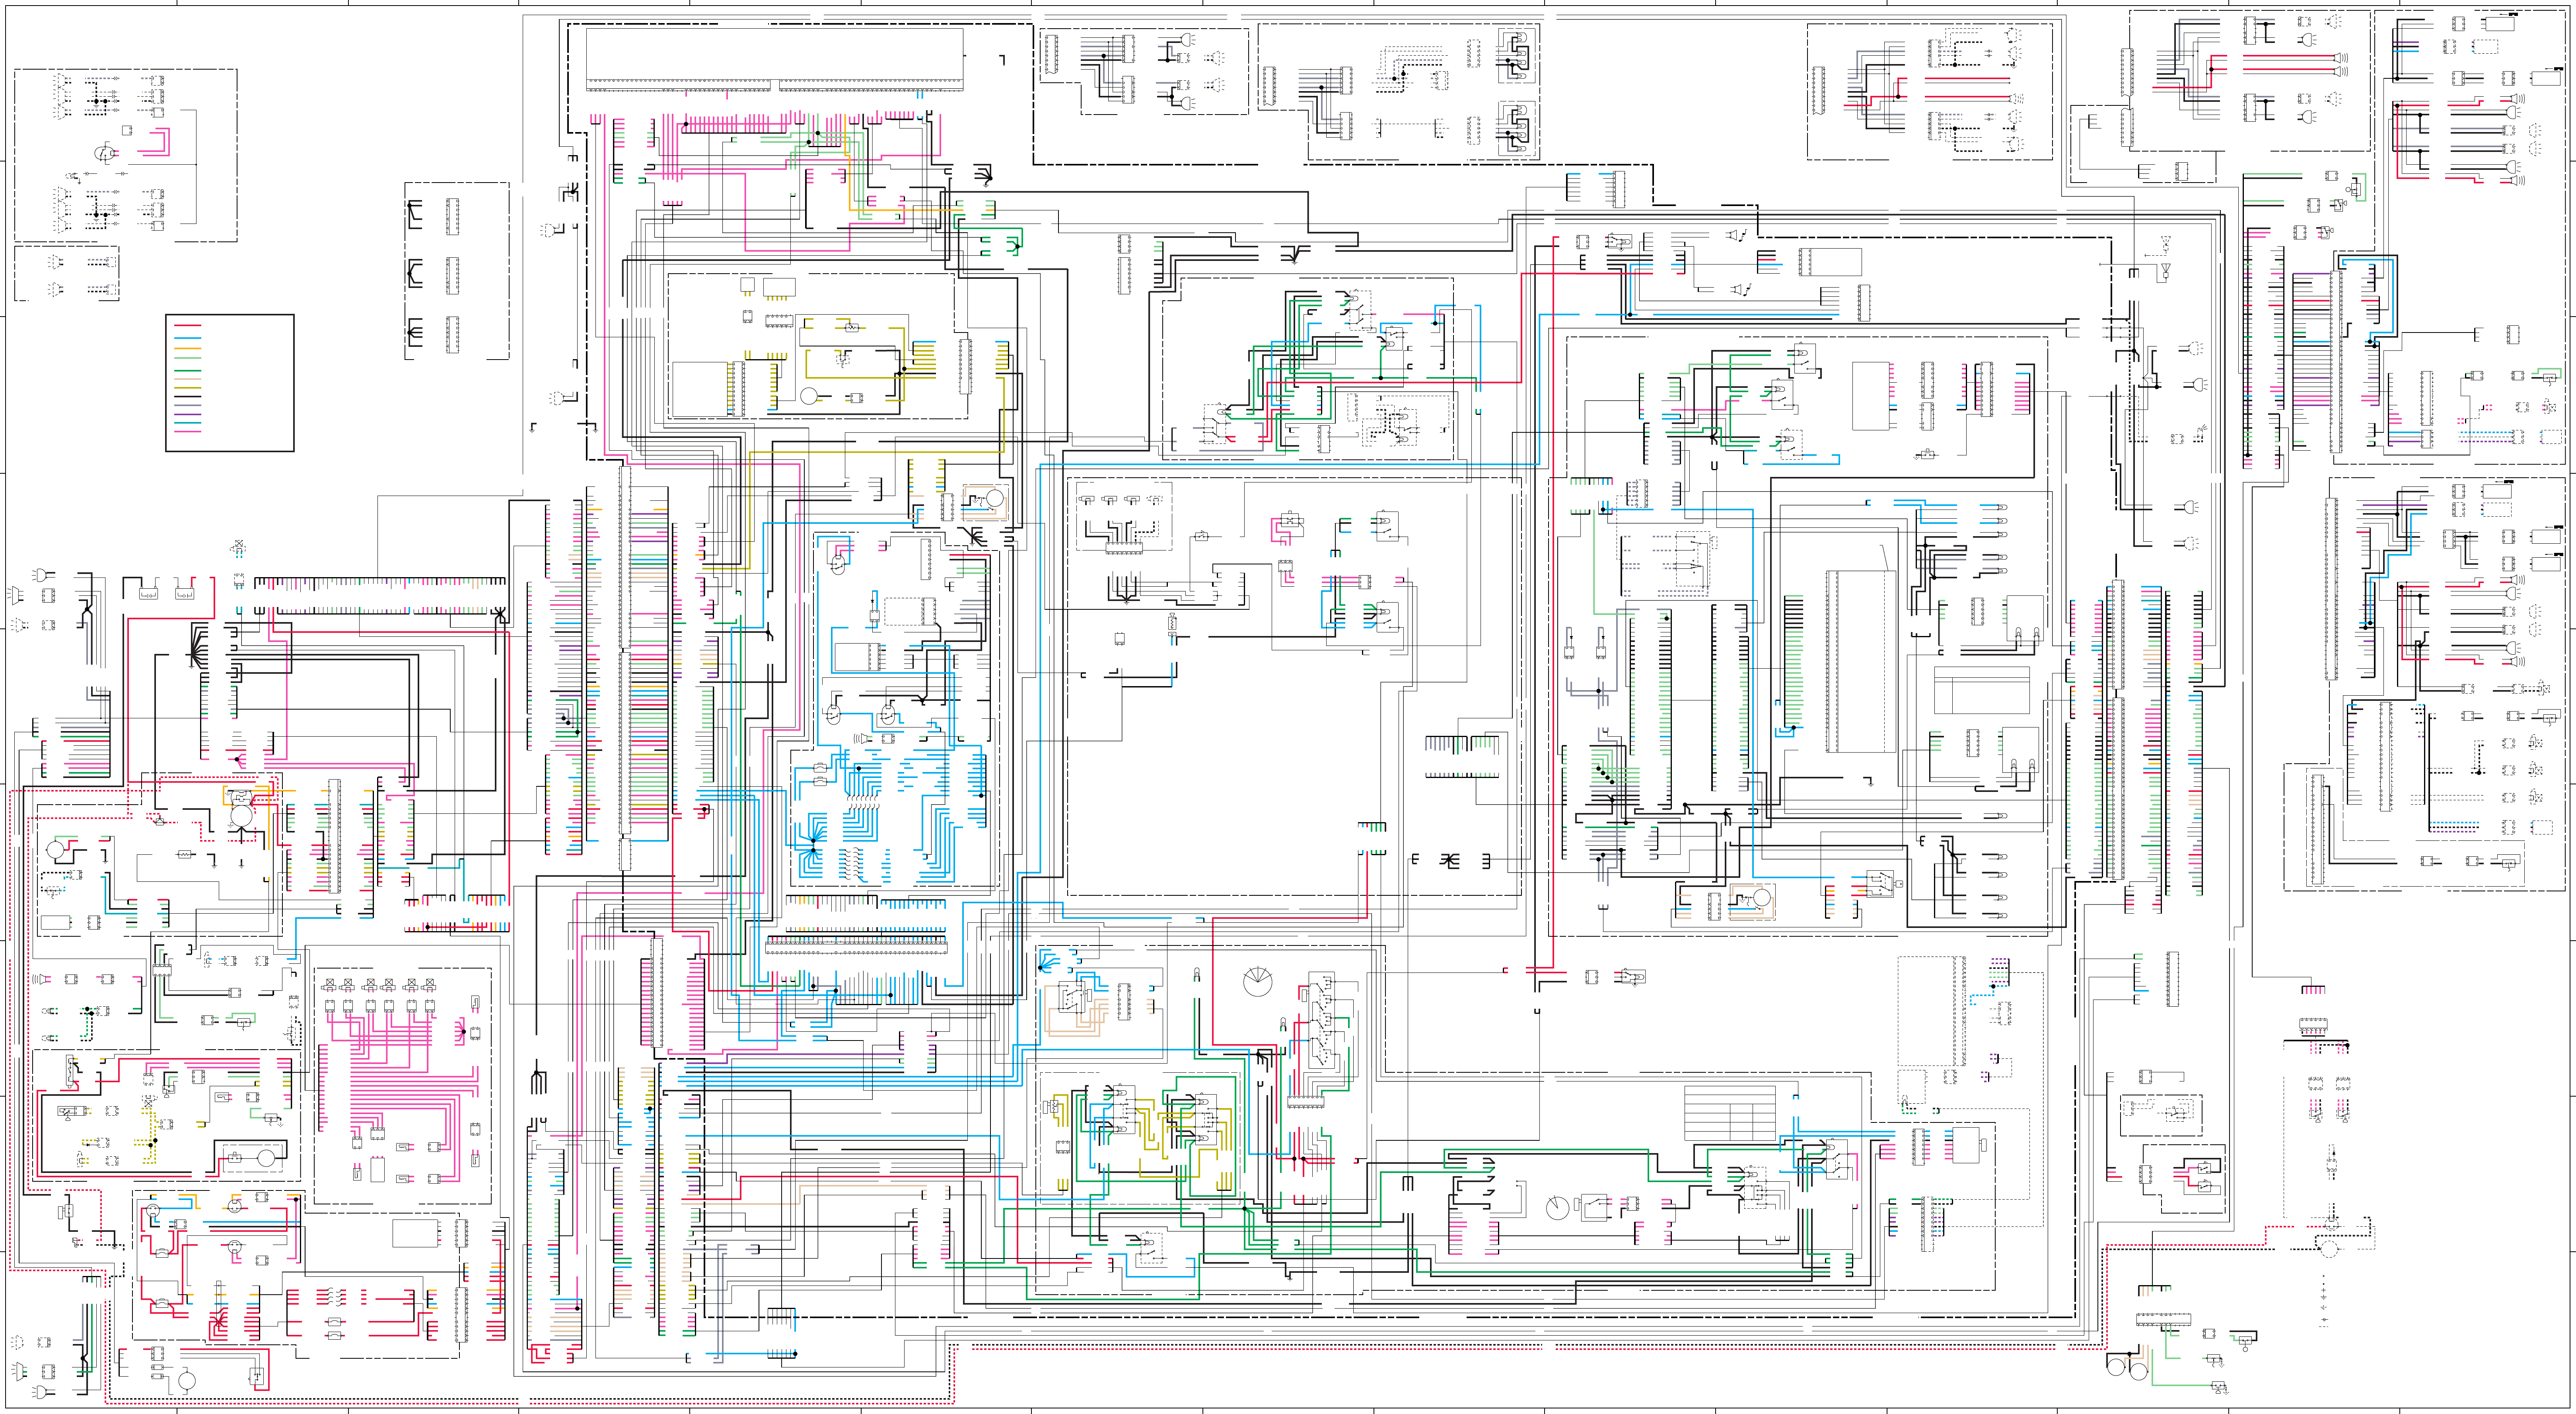 950g 962g it62g electrical system schematic pilot conv strg cat Chevrolet Fuse Box Diagram